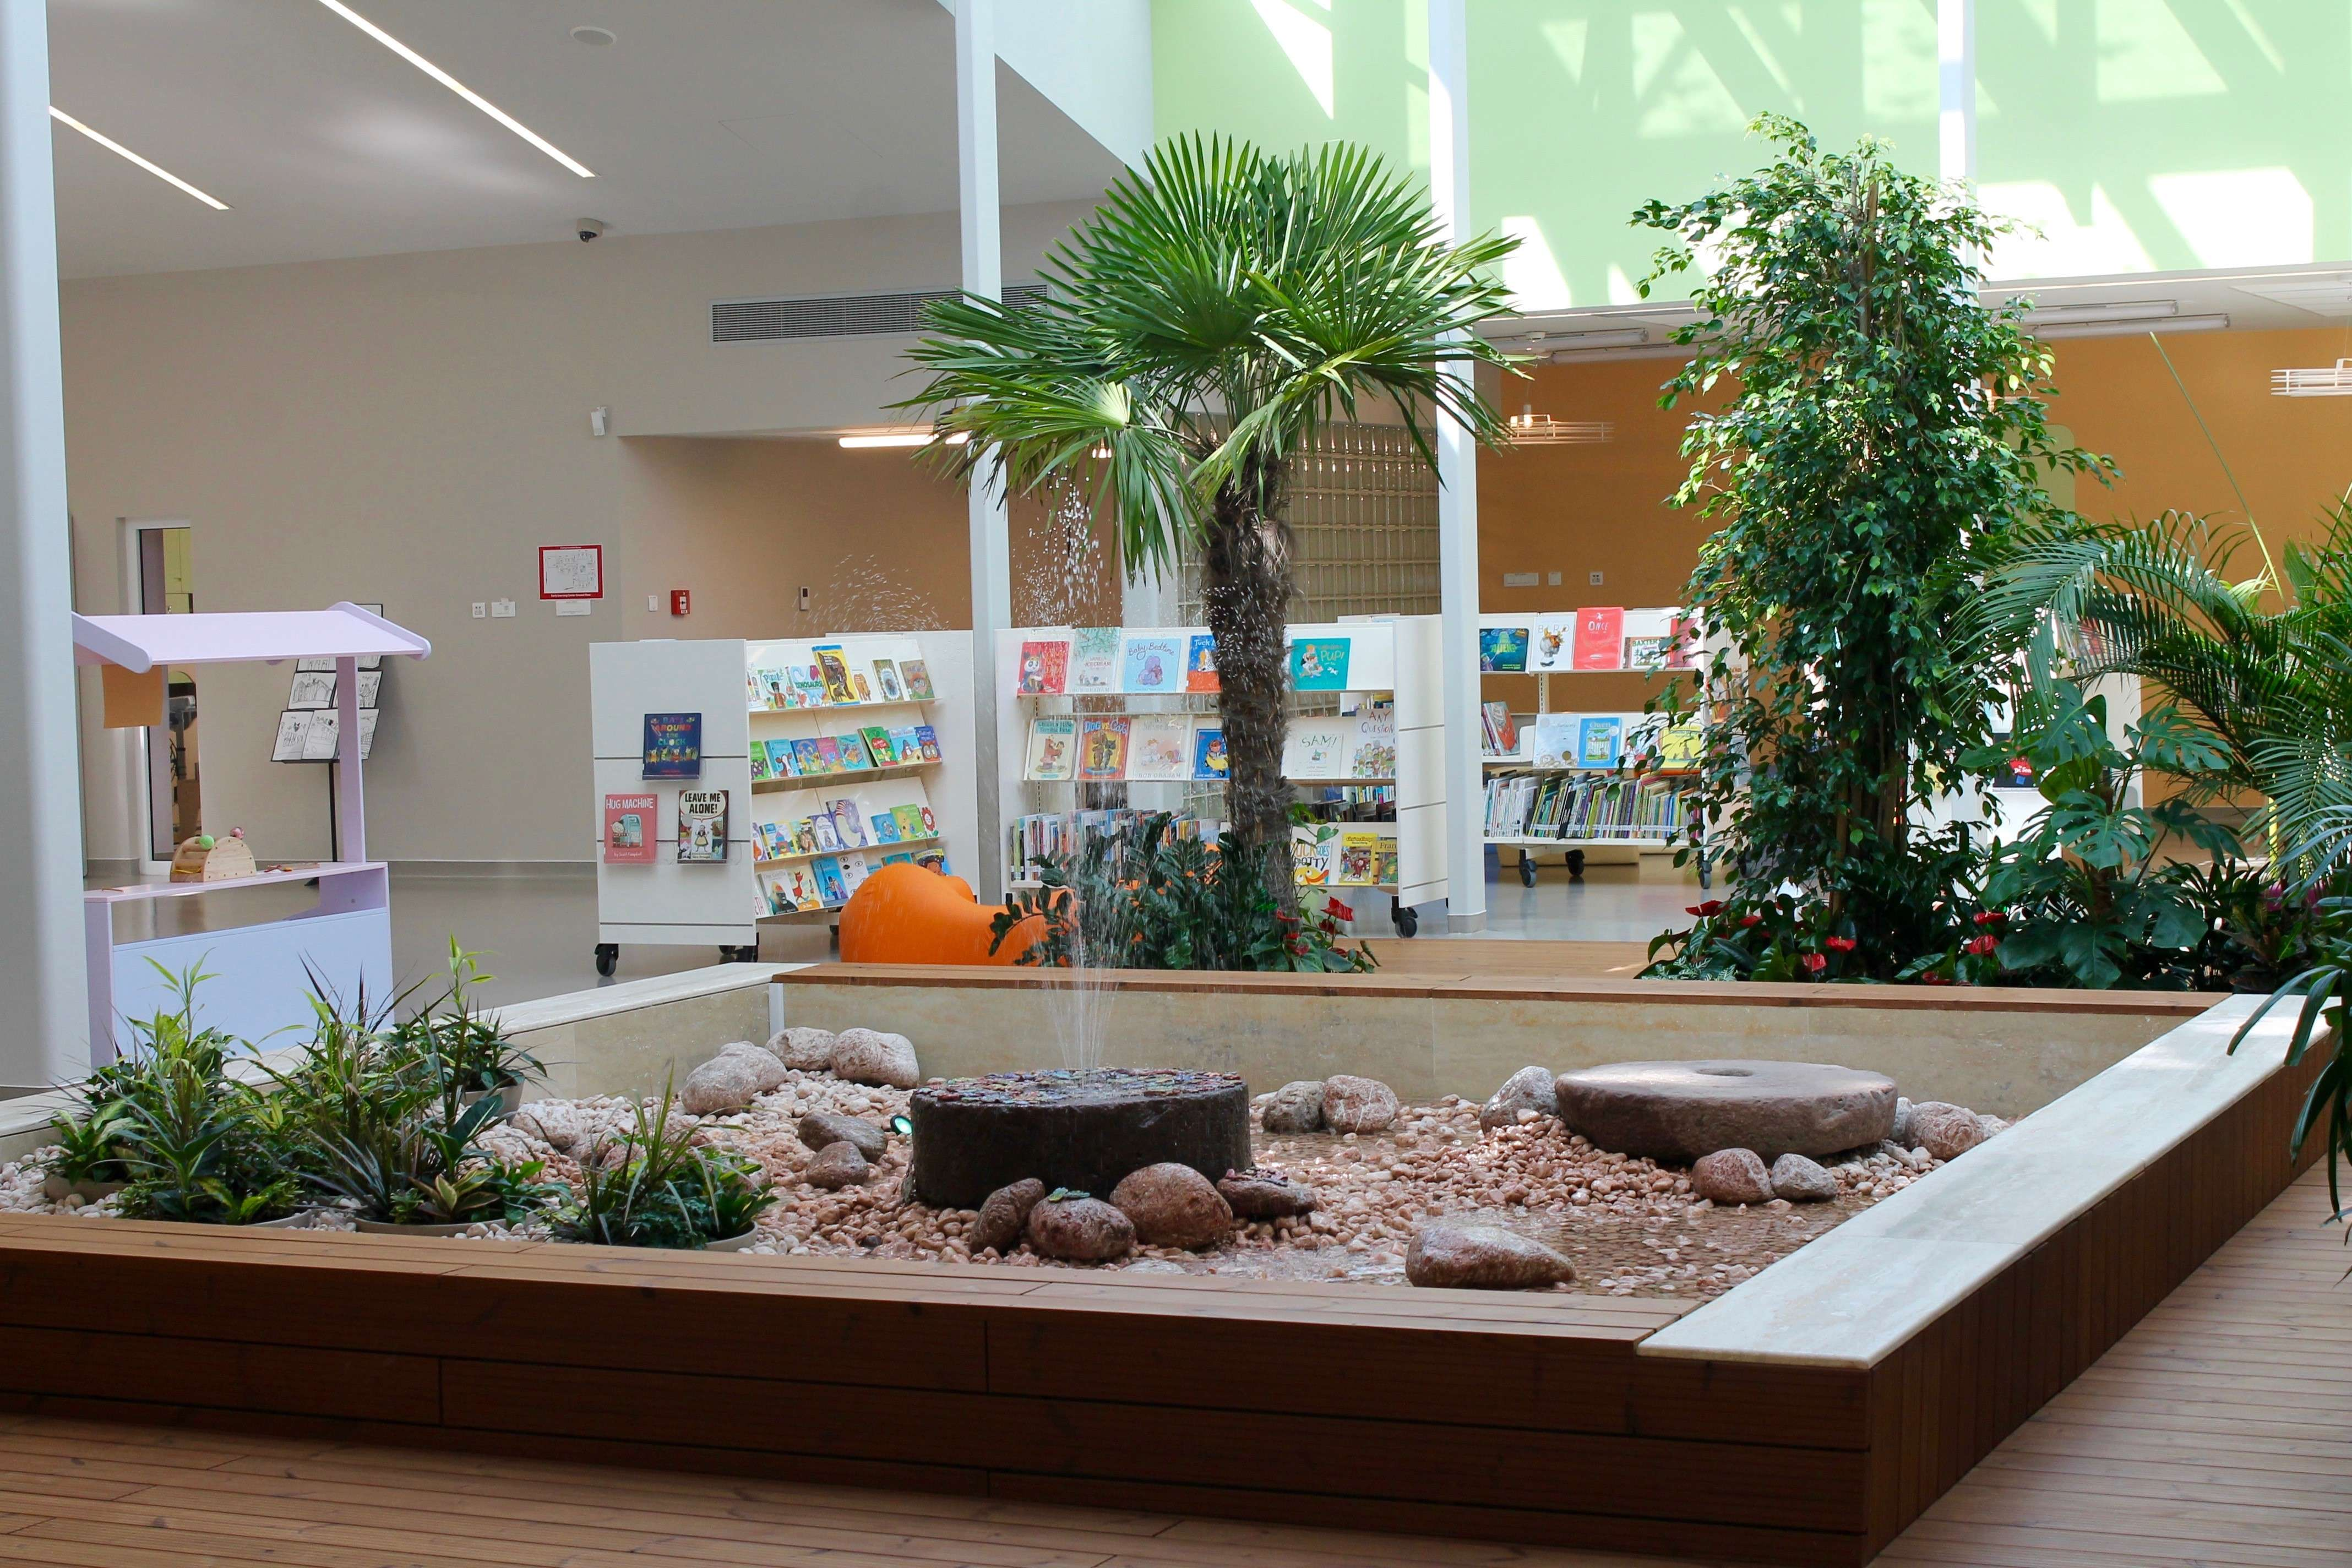 A Look Inside AISB's New Early Childhood Building